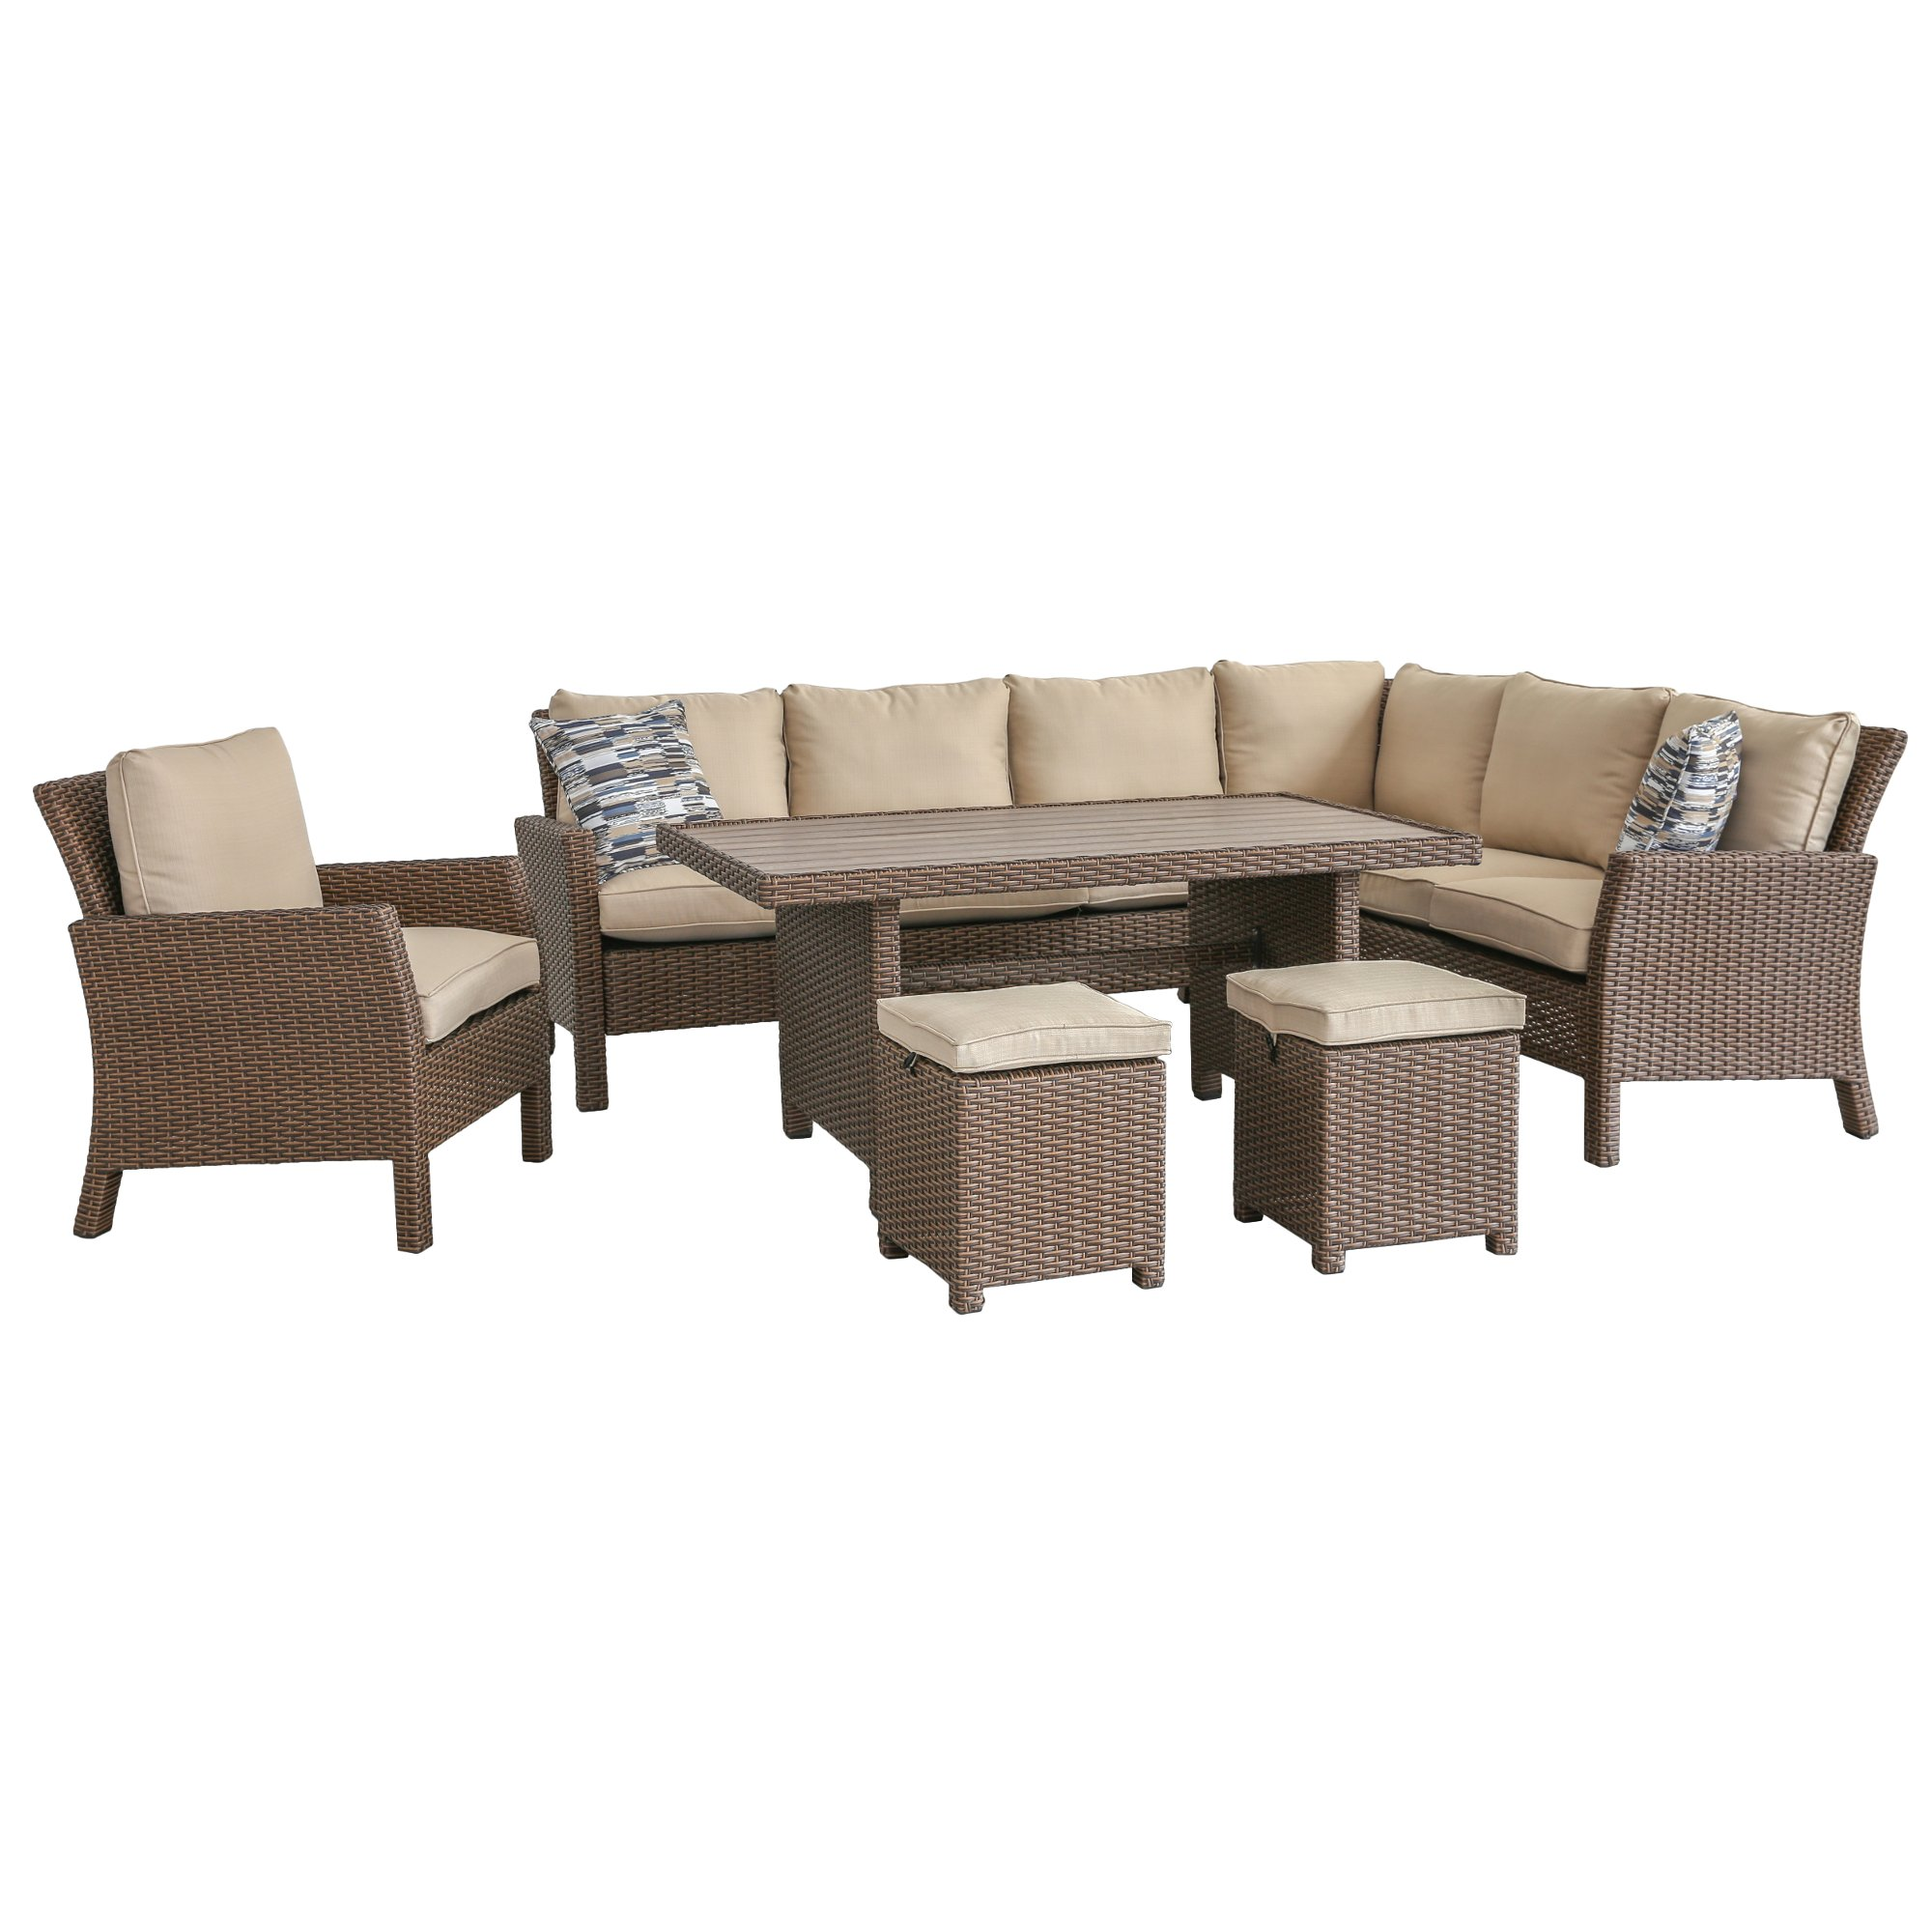 6 Piece Outdoor Patio Furniture Set Arcadia Furniture Patio